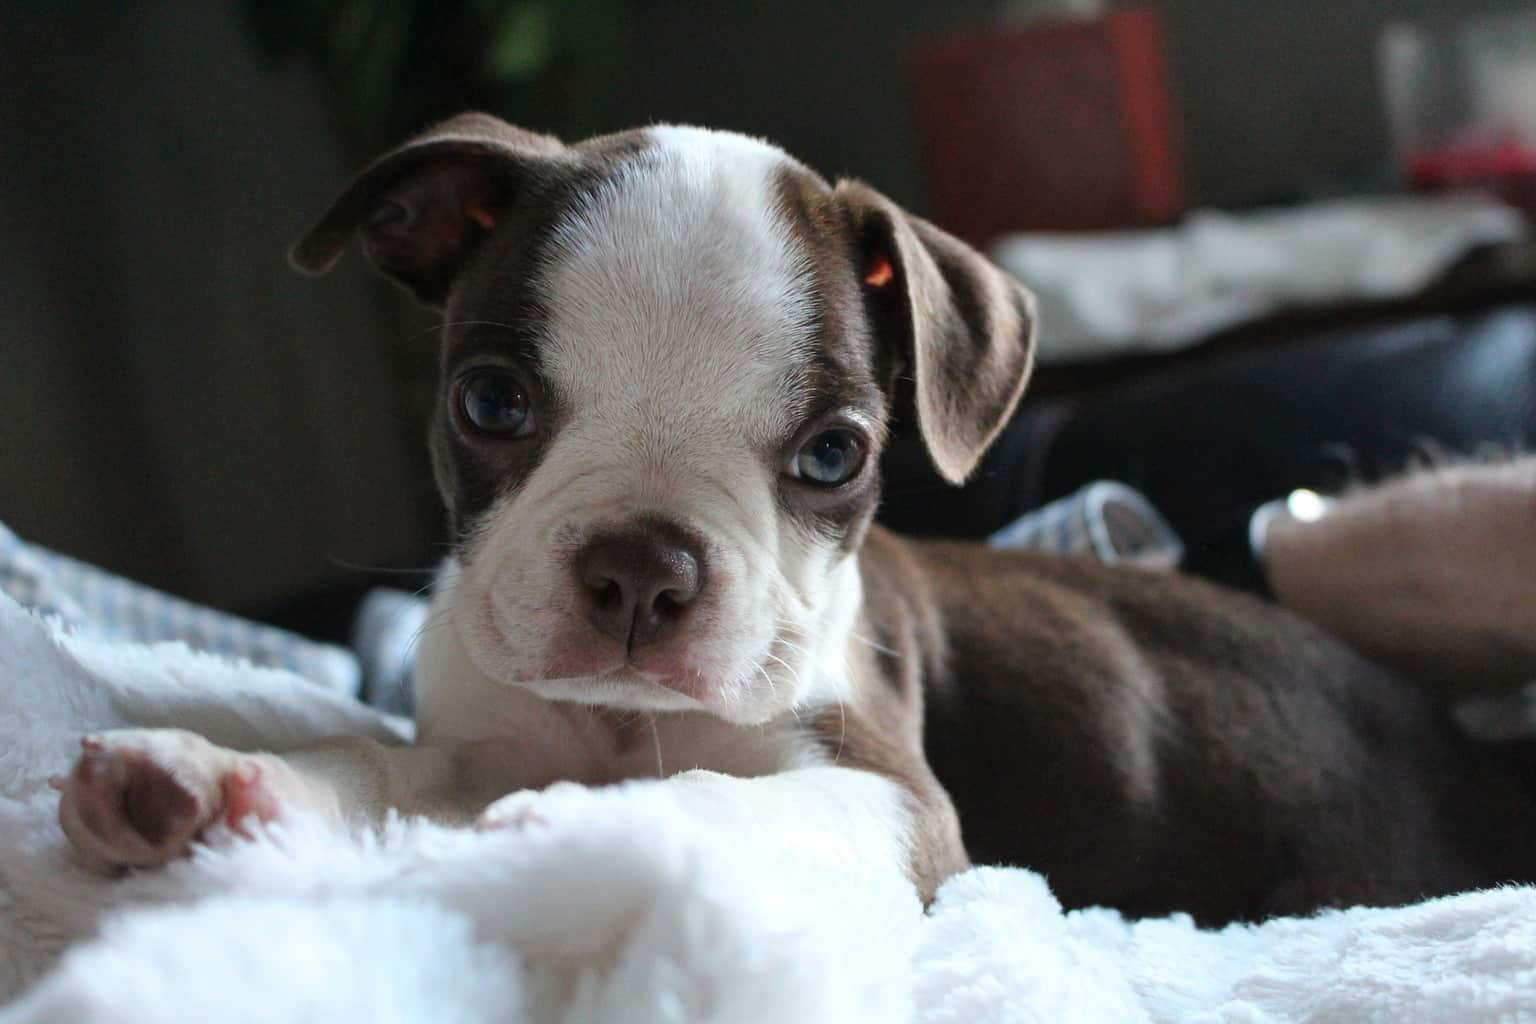 Boston Terrier puppy sitting on the bed